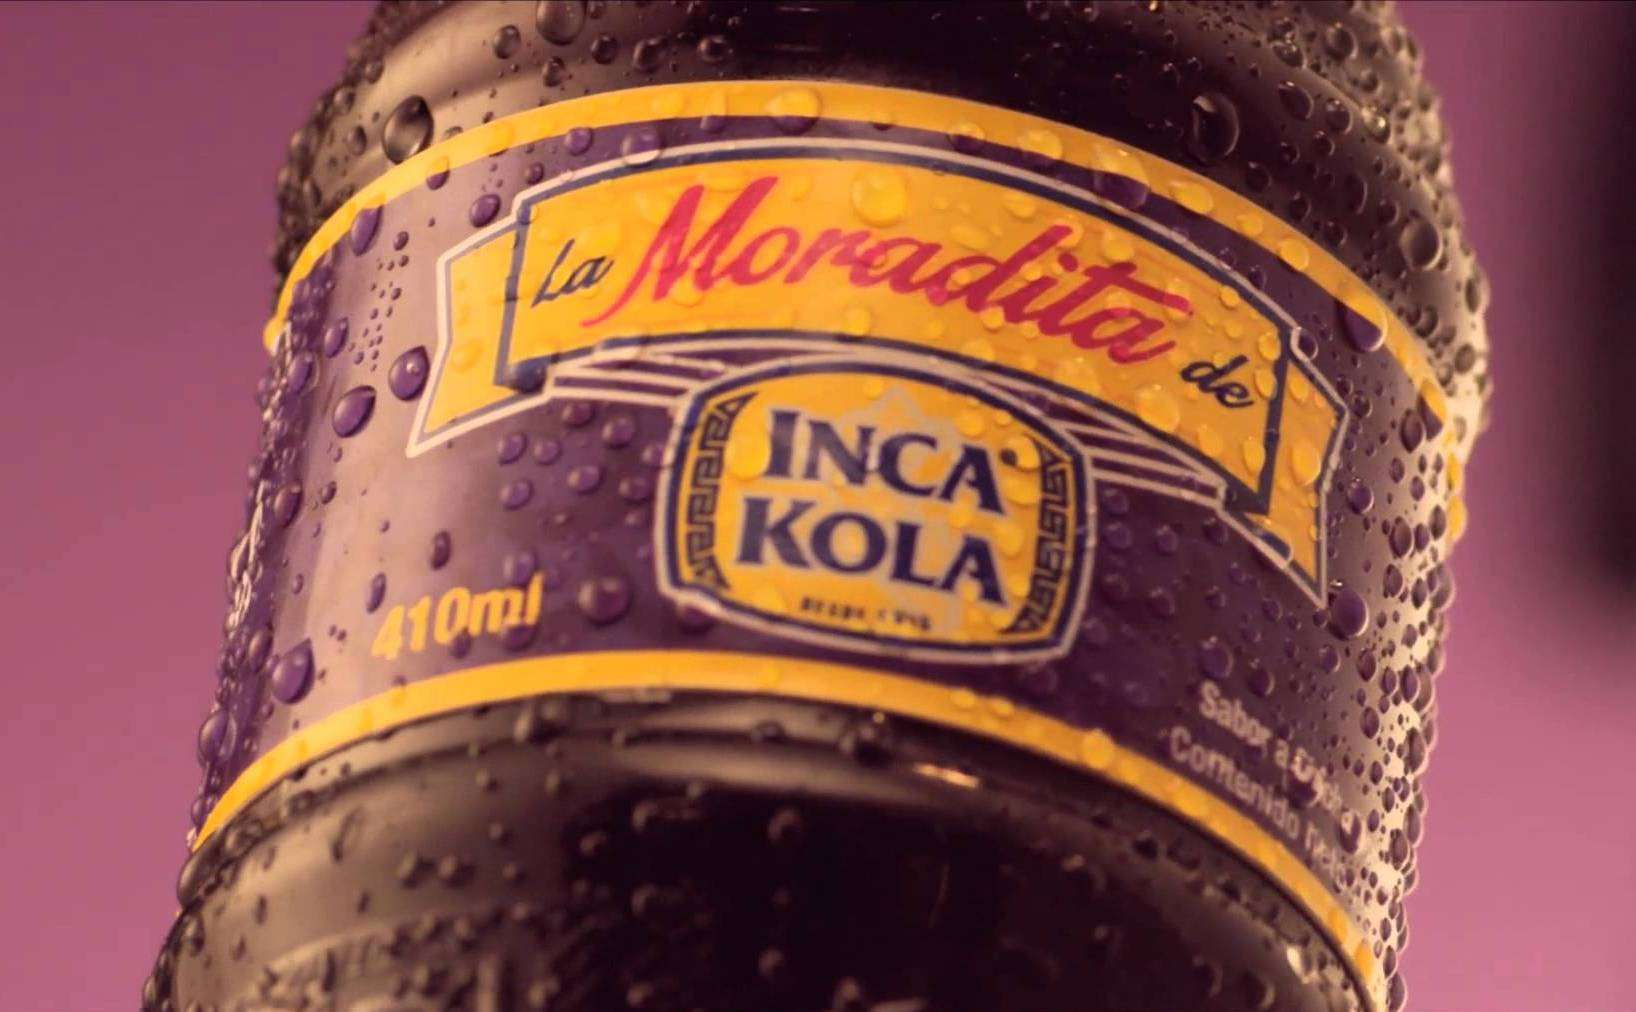 Foto: Captura de video La Moradita de Inca Kola